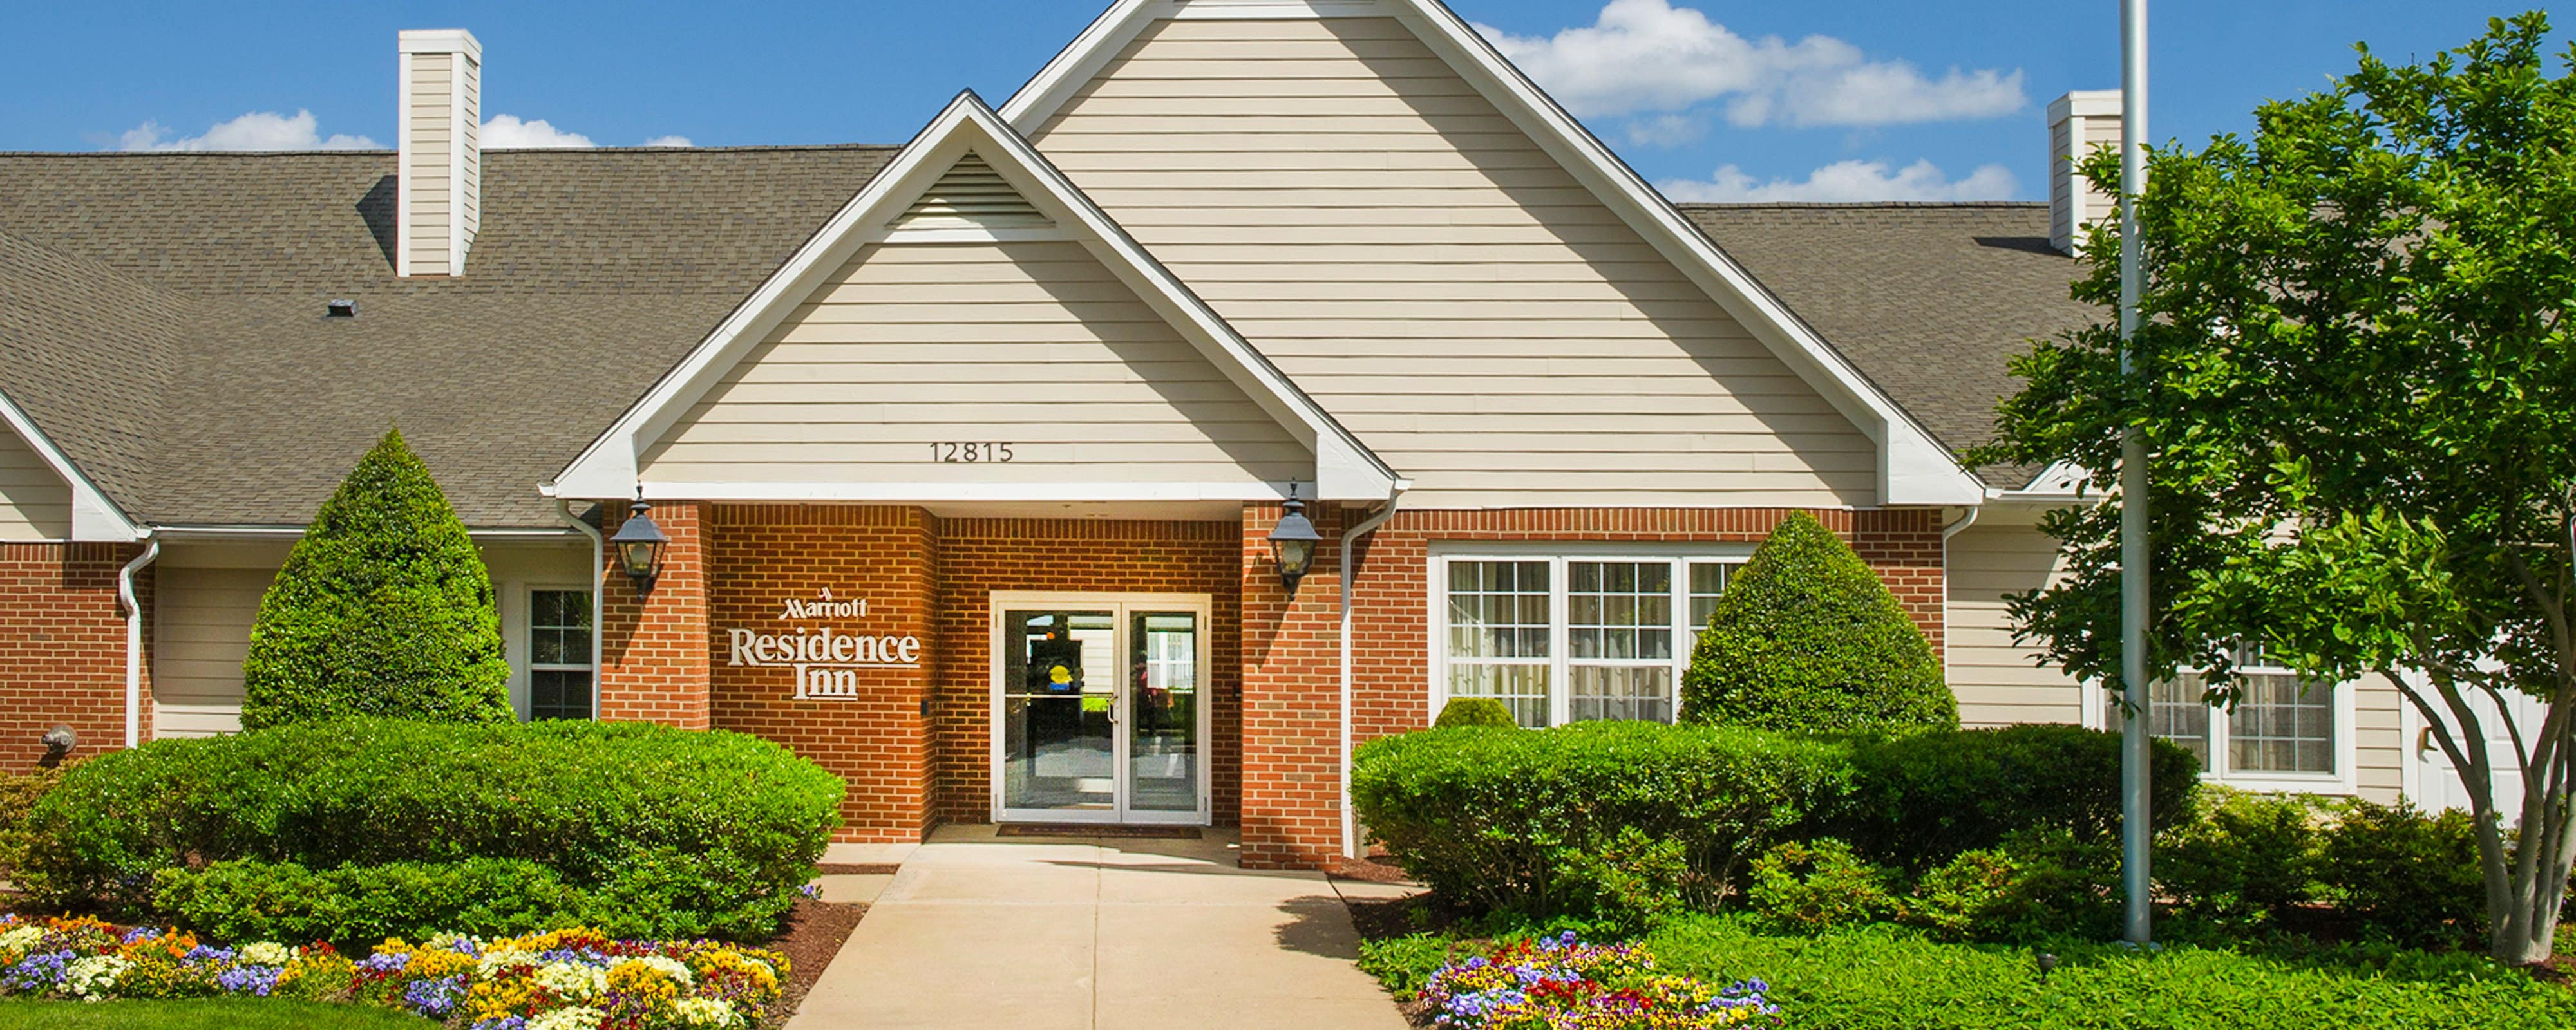 Extended Stay Hotels In Northern Virginia